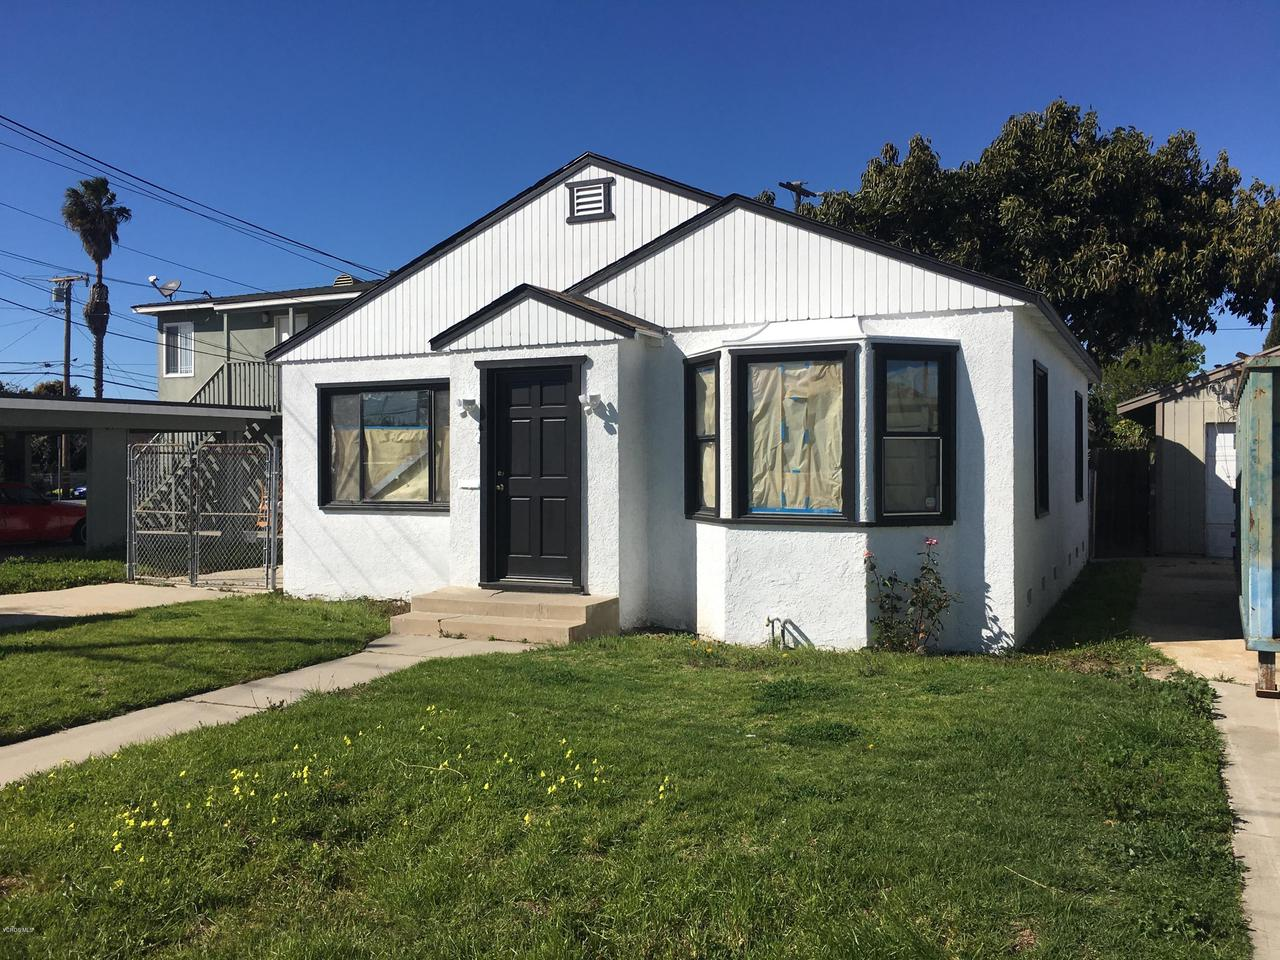 Photo of 115 EAST B STREET, Port Hueneme, CA 93041